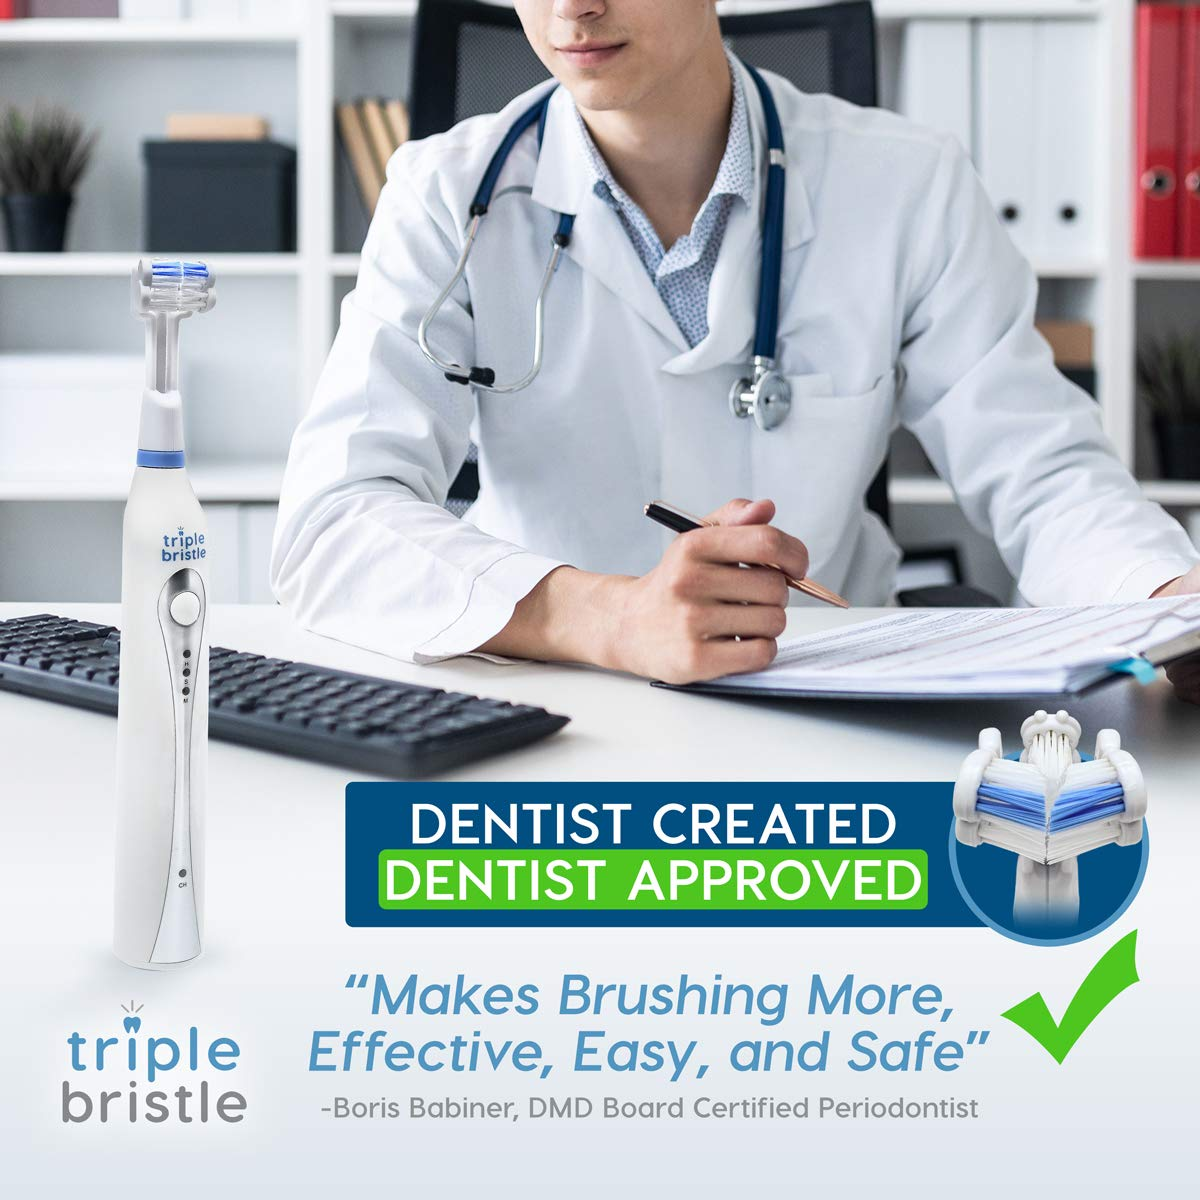 Triple Bristle Best Sonic Electric Toothbrush - Whiter Teeth & Brighter Smile - Rechargeable 31,000 VPM Tooth Brush is Unique & Patented 3 Brush Head Design - Perfect Angle Bristles Clean Each Tooth by Triple Bristle (Image #9)